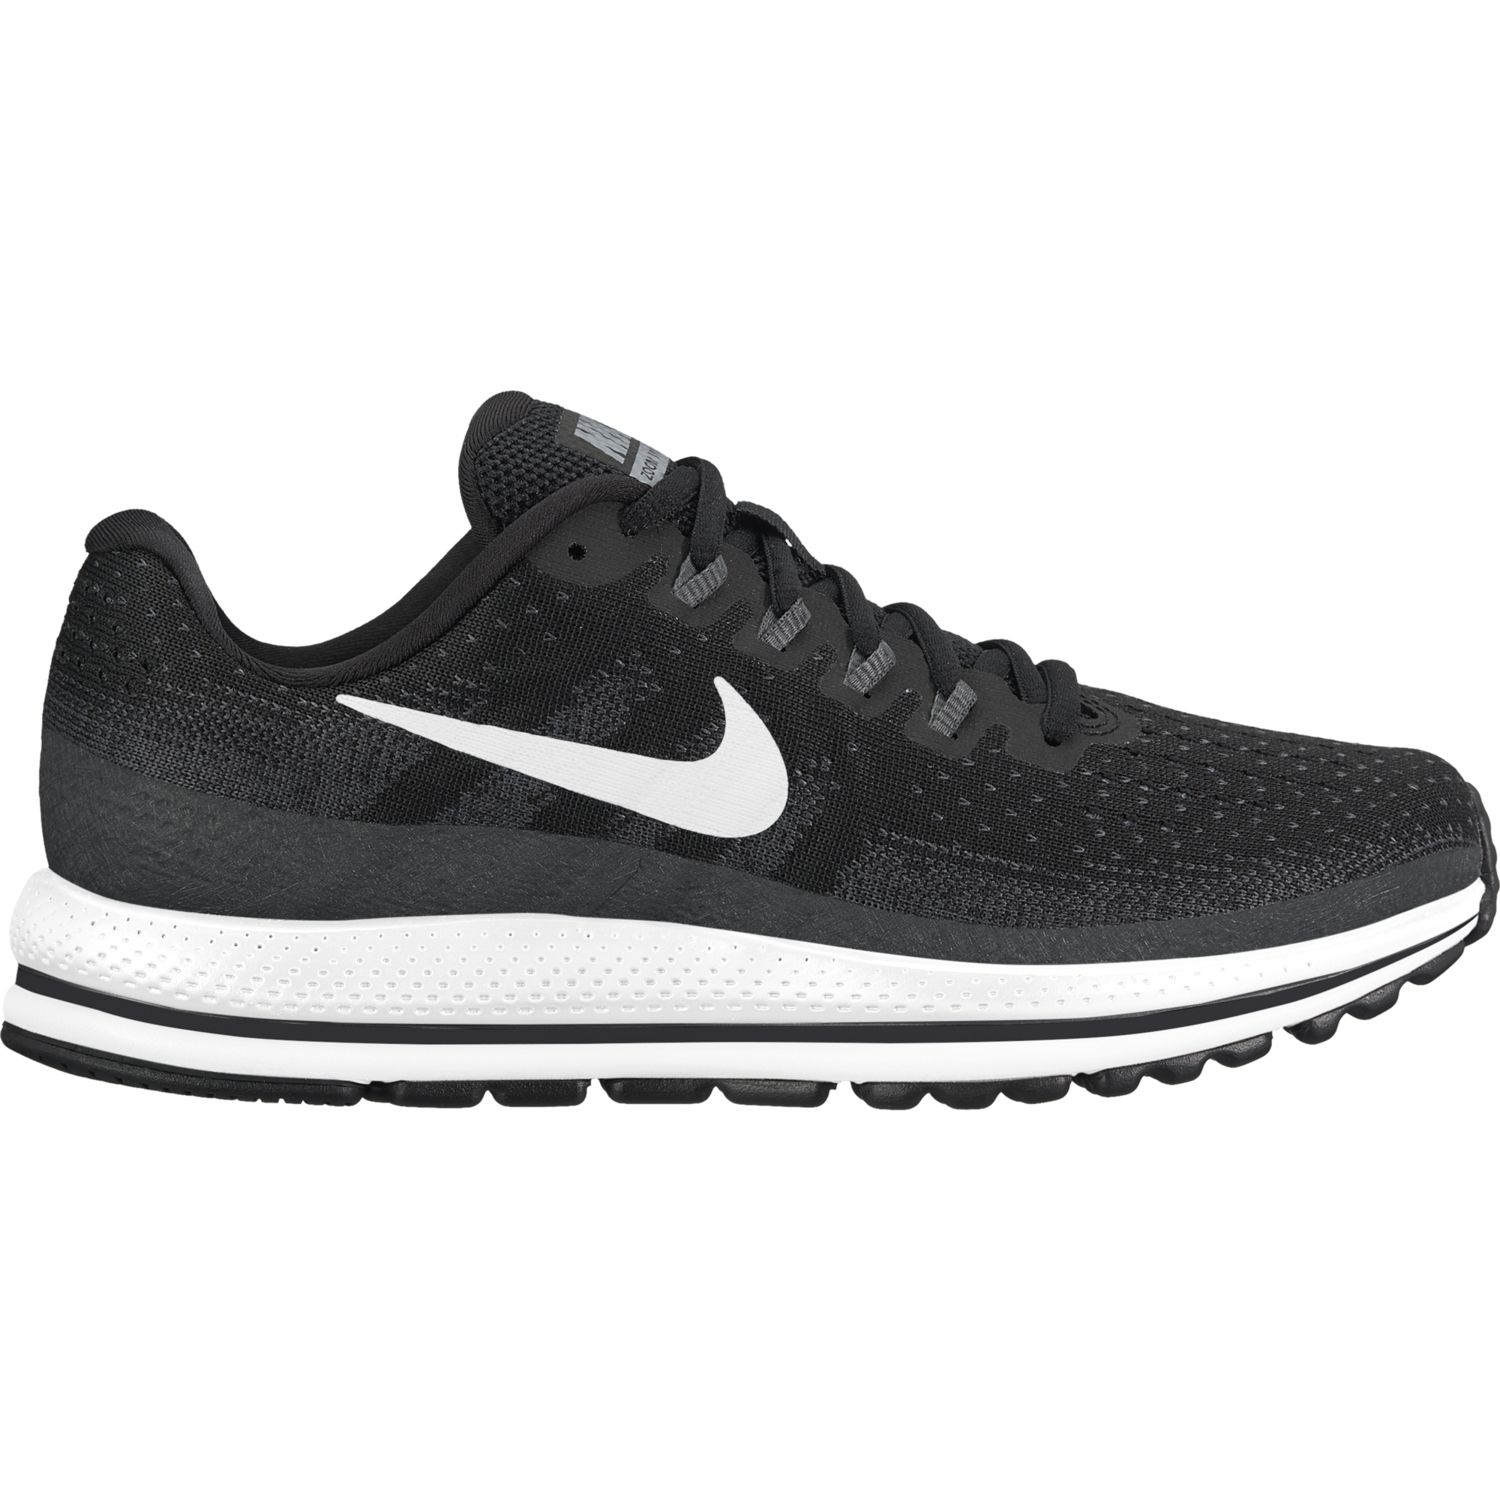 Nike Lady Air Zoom Vomero 13 in Schwarz